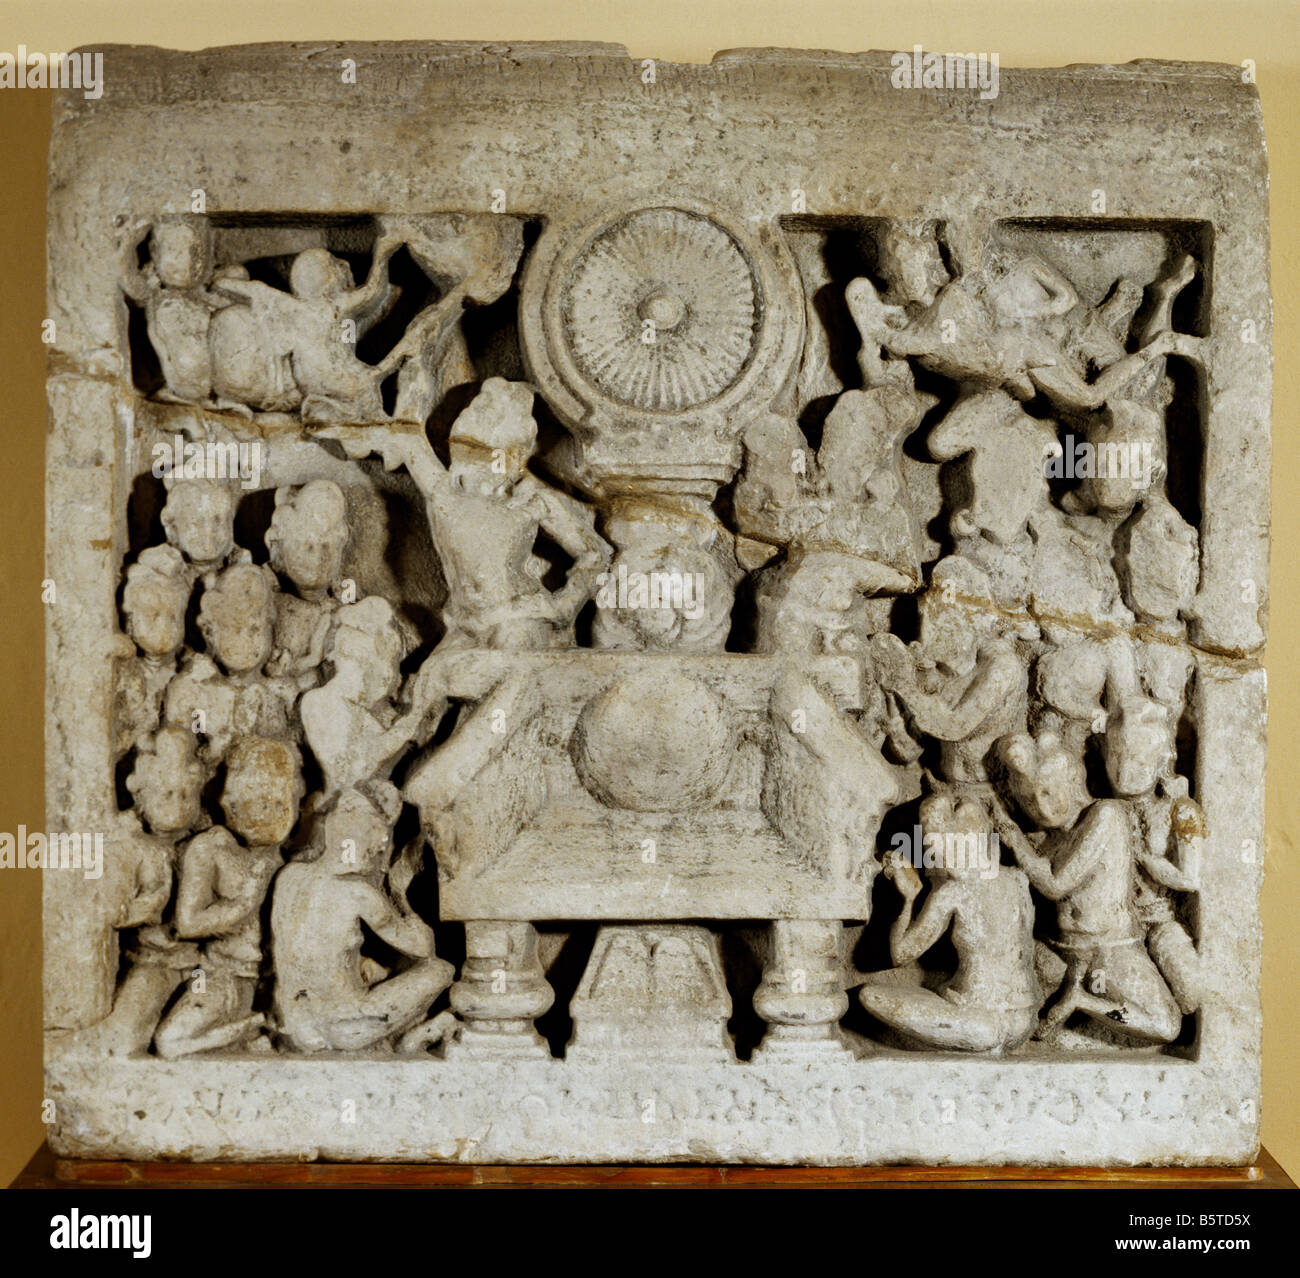 Worship Of Buddhist Symbols Early Indian Sculpture Limestone